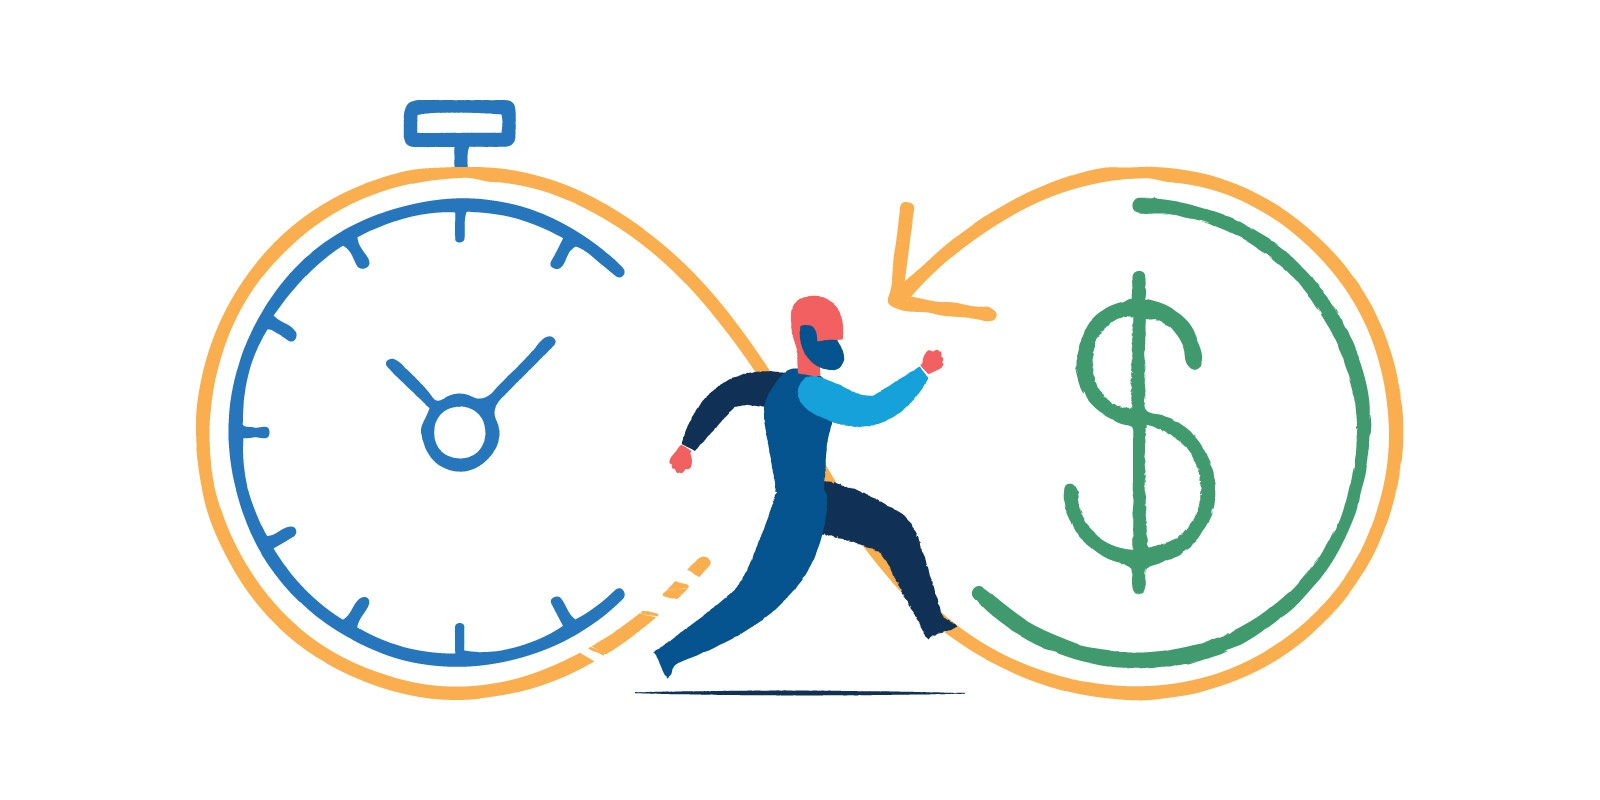 IT sevice management automates processes to save time and money involved in hiring extra labor.